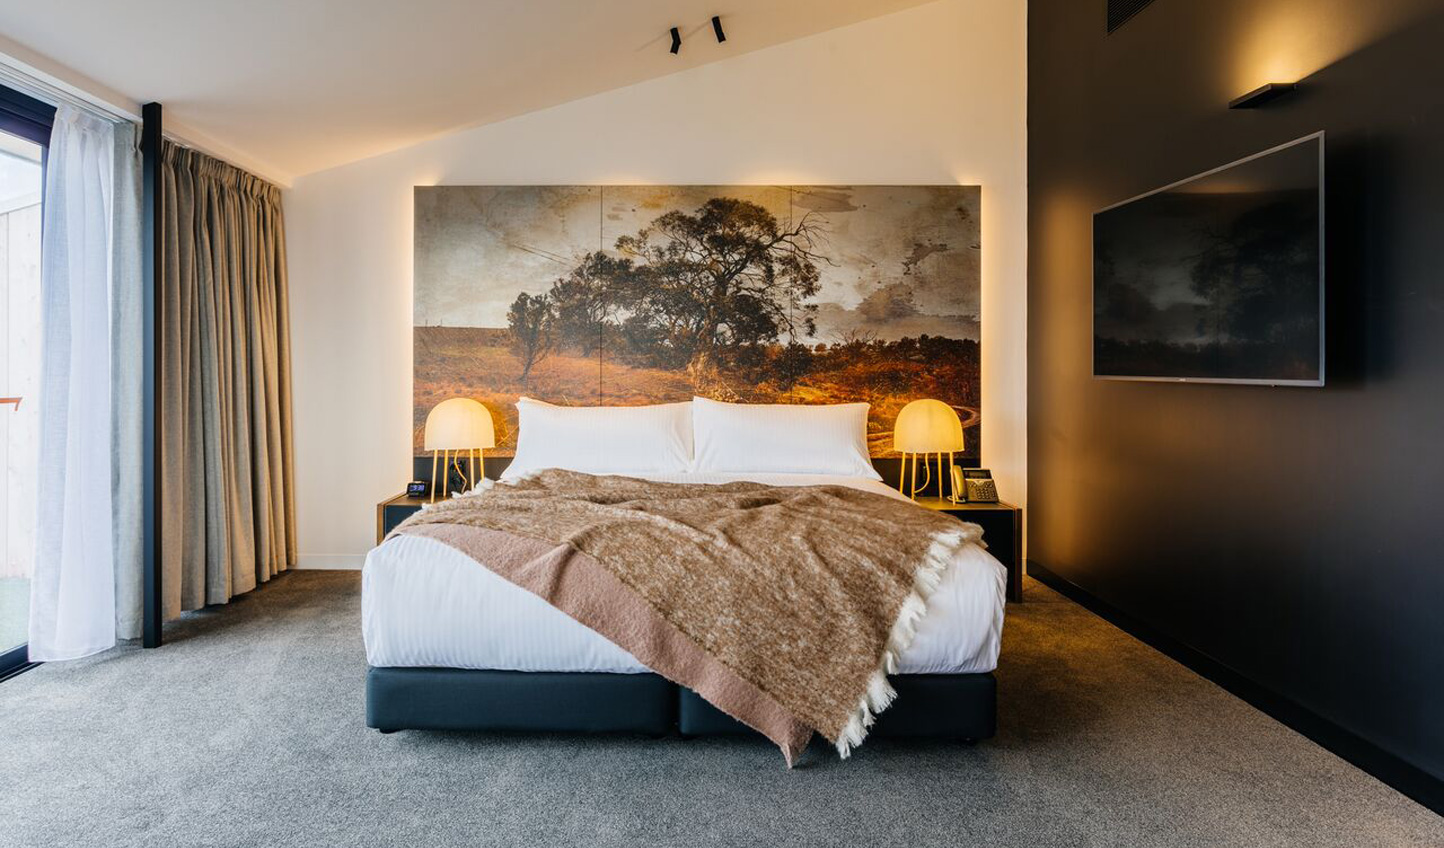 The Tasmanian artwork in the rooms at MACq 01 tells the perfect story; one of luxury and tradition